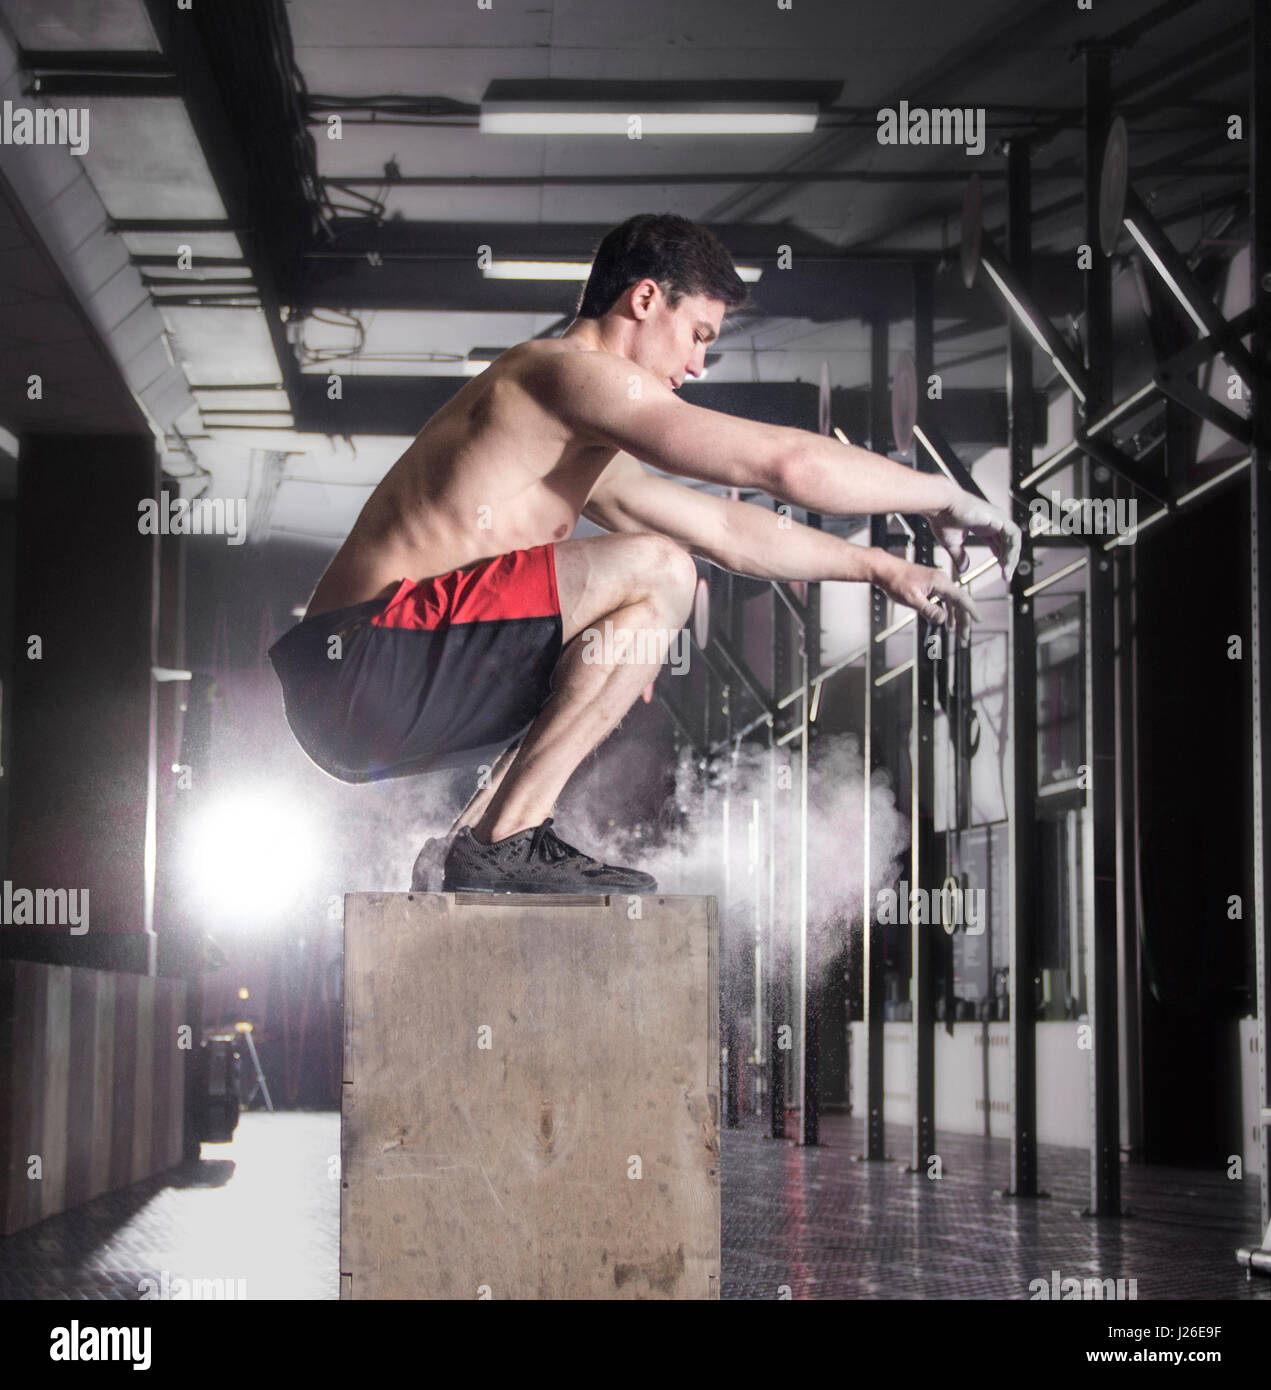 Fit young man box jumping at a crossfit gym.Athlete is performin - Stock-Bilder